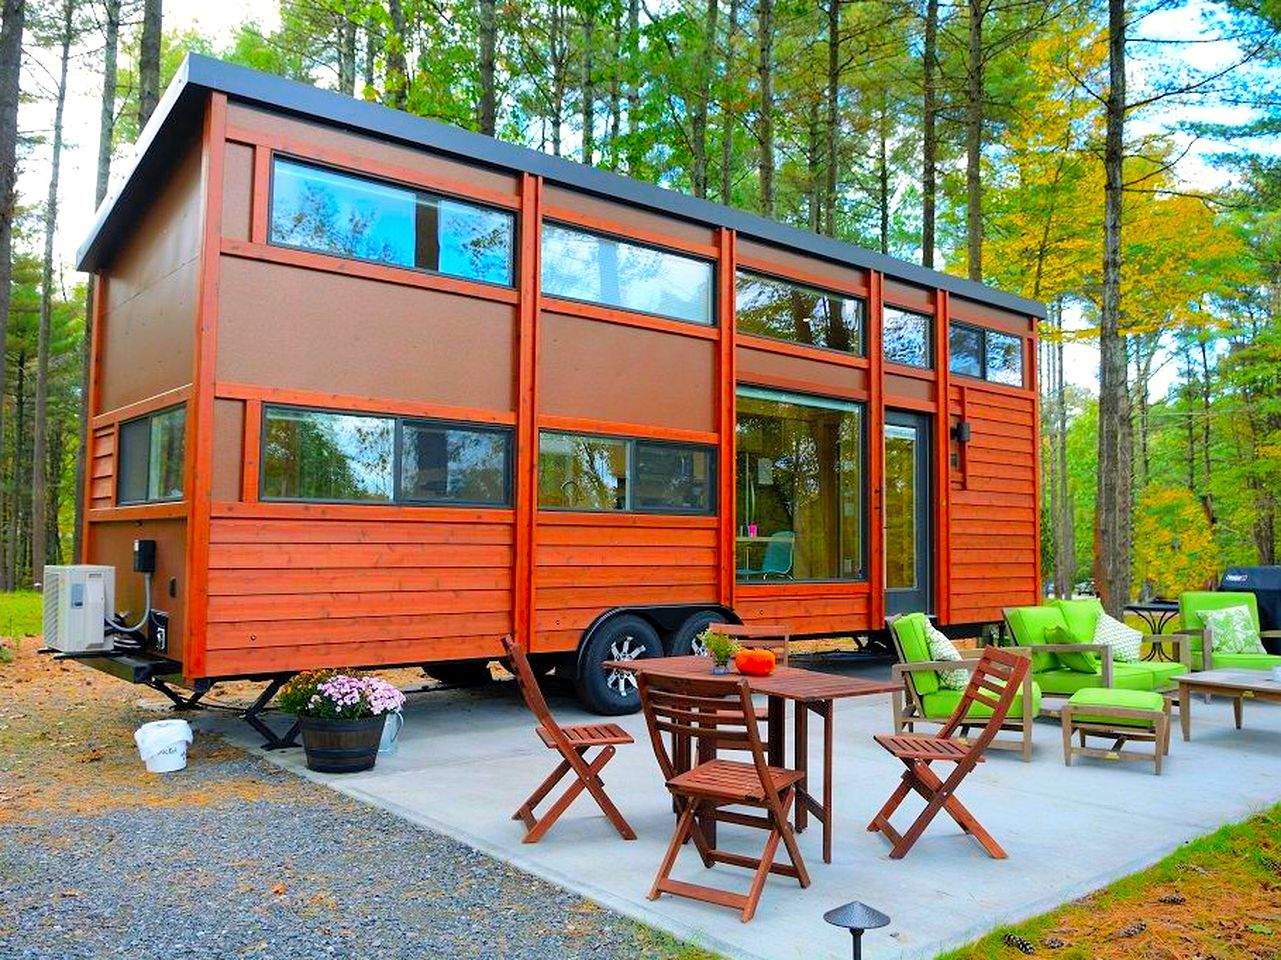 Wooden tiny house with lots of windows and patio area furnished with tables and chairs in South Cairo, New York.